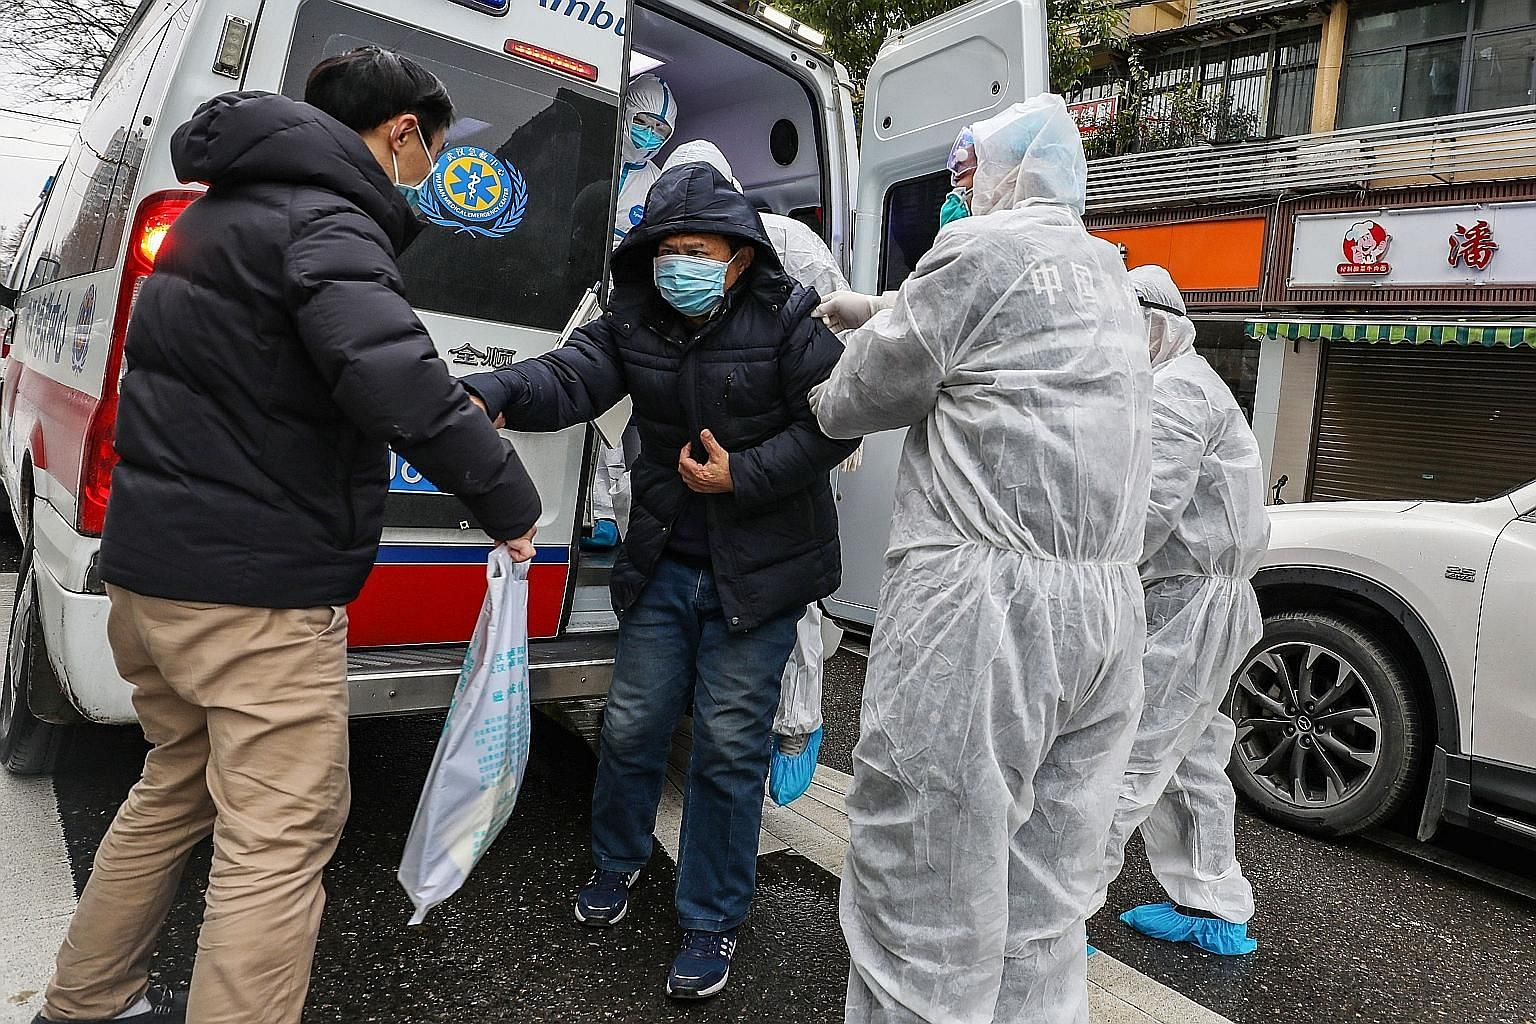 A patient being helped from an ambulance by medical staff at a Hubei hospital. The writer says compared with the Chinese leadership's secrecy and inaction during the Sars epidemic, Chinese President Xi Jinping has responded with speed and alacrity to